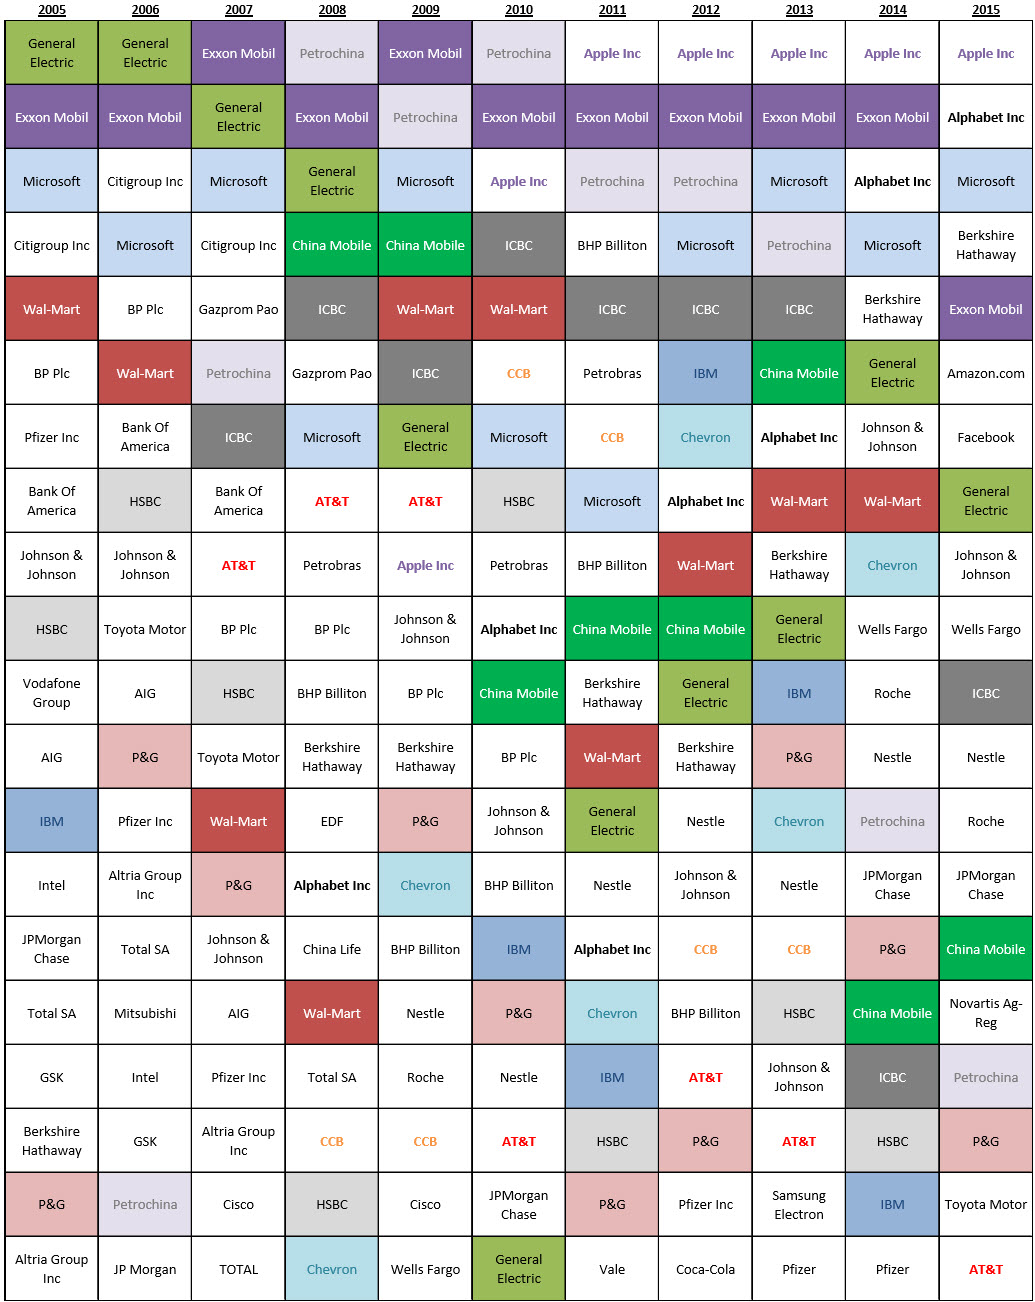 Top 20 biggest companies in the world by market capitalization